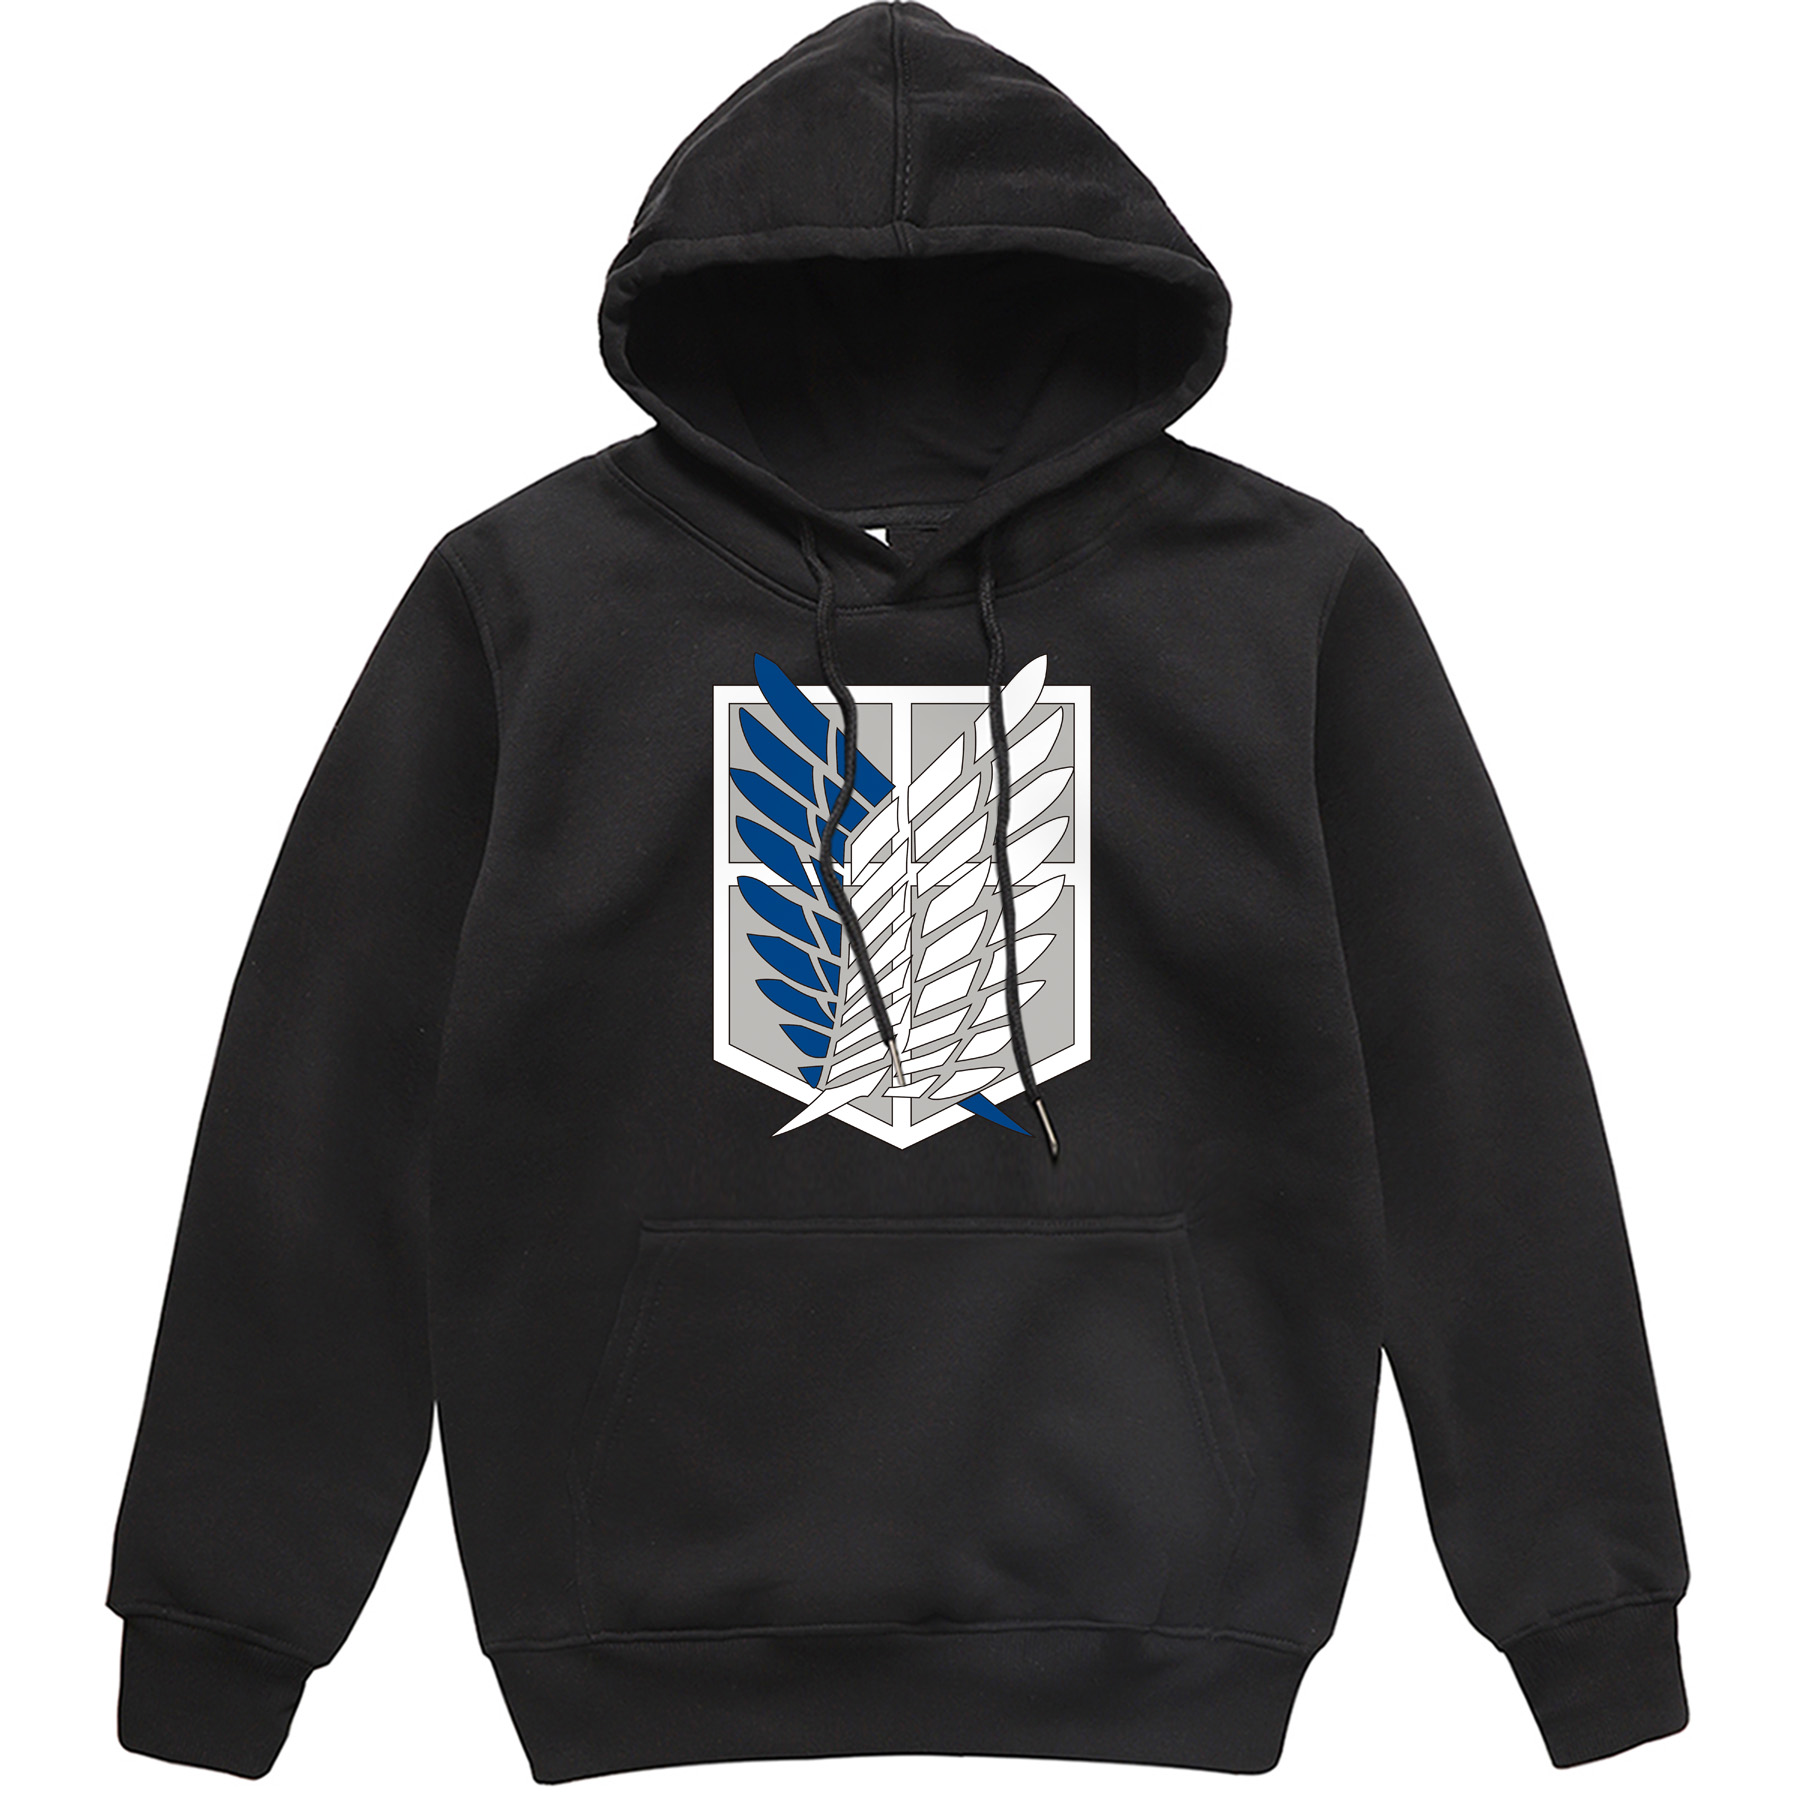 Attack On Titan Male Sports Pullover Wings Of Freedom Pattern Clothing Men 2019 Autumn Winter Warm Hooded Sweatshirt Men's Tops